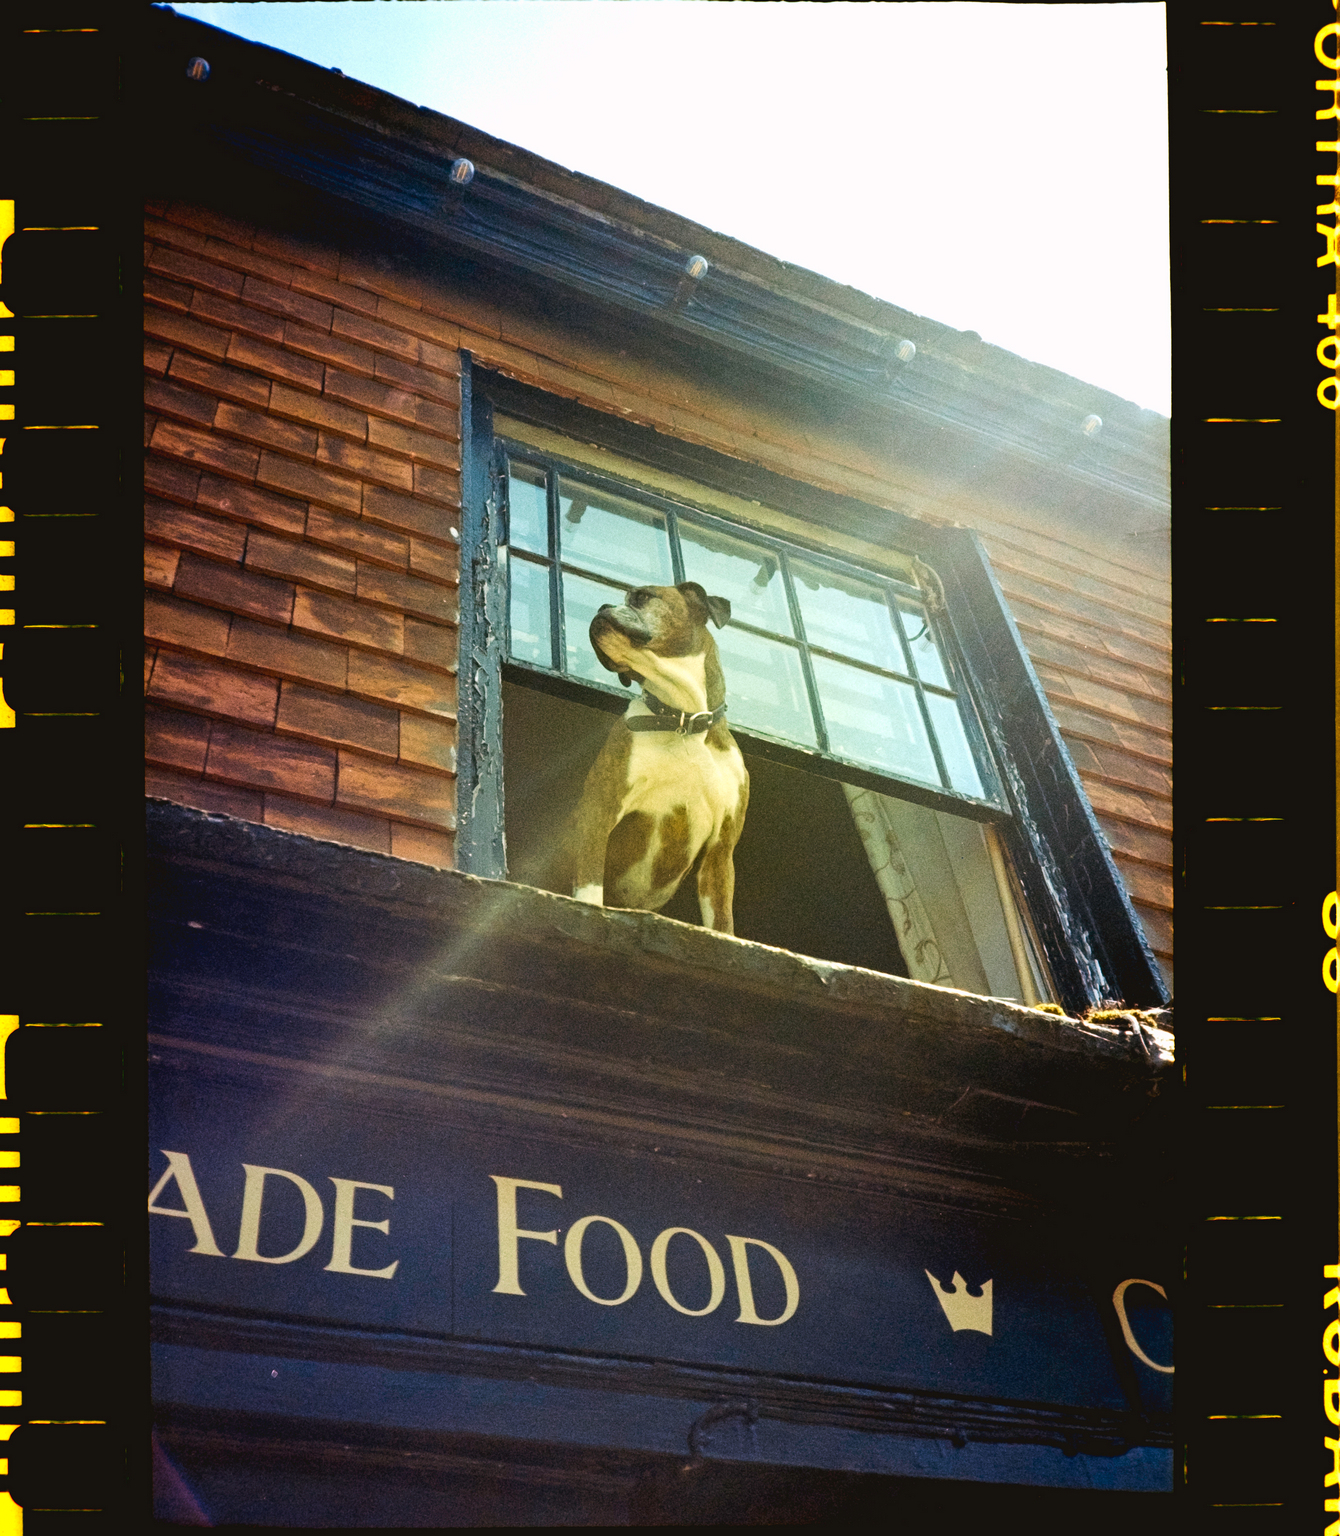 Dog in window (Pic: Andy Clad)